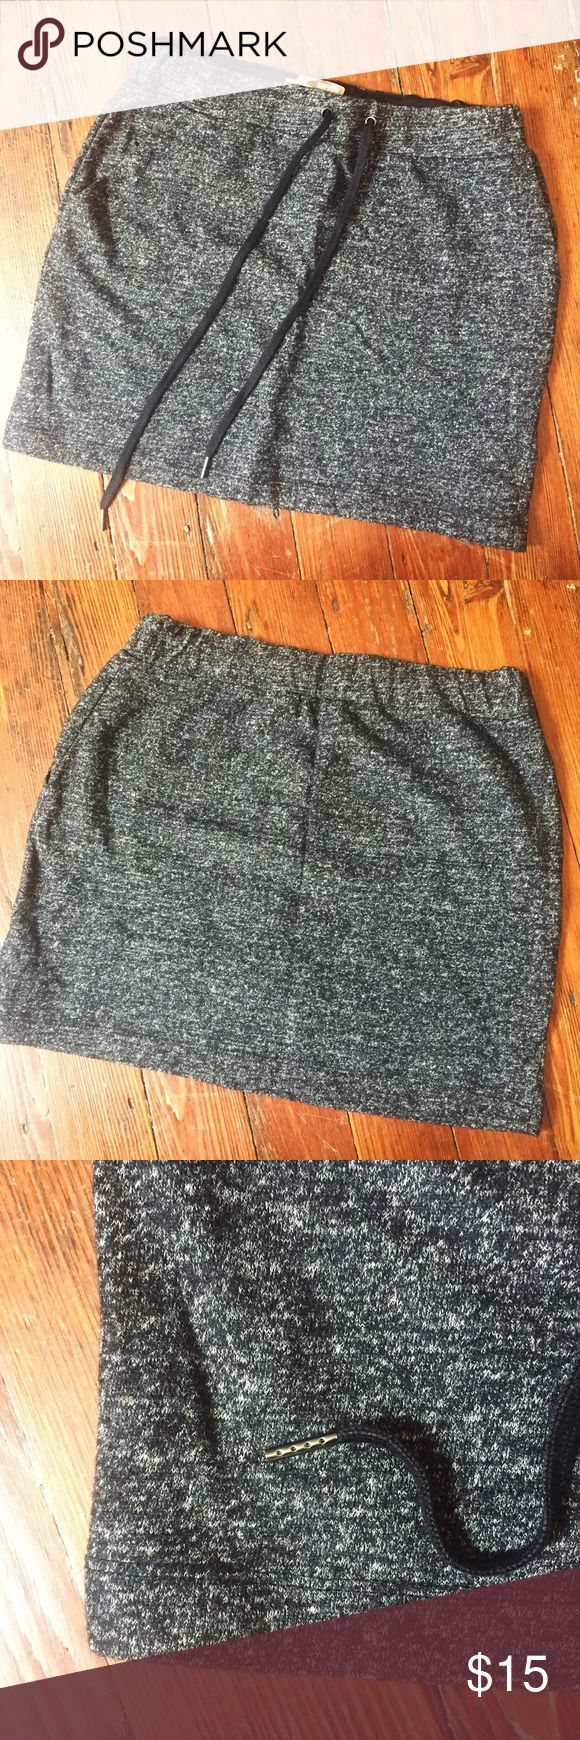 Forever 21 Contemporary • charcoal mini skirt 🌷 Heavy weight skirt (perfect over tights with knee high boots in the Fall). Drawstring top. Never worn! Forever 21 Skirts Mini